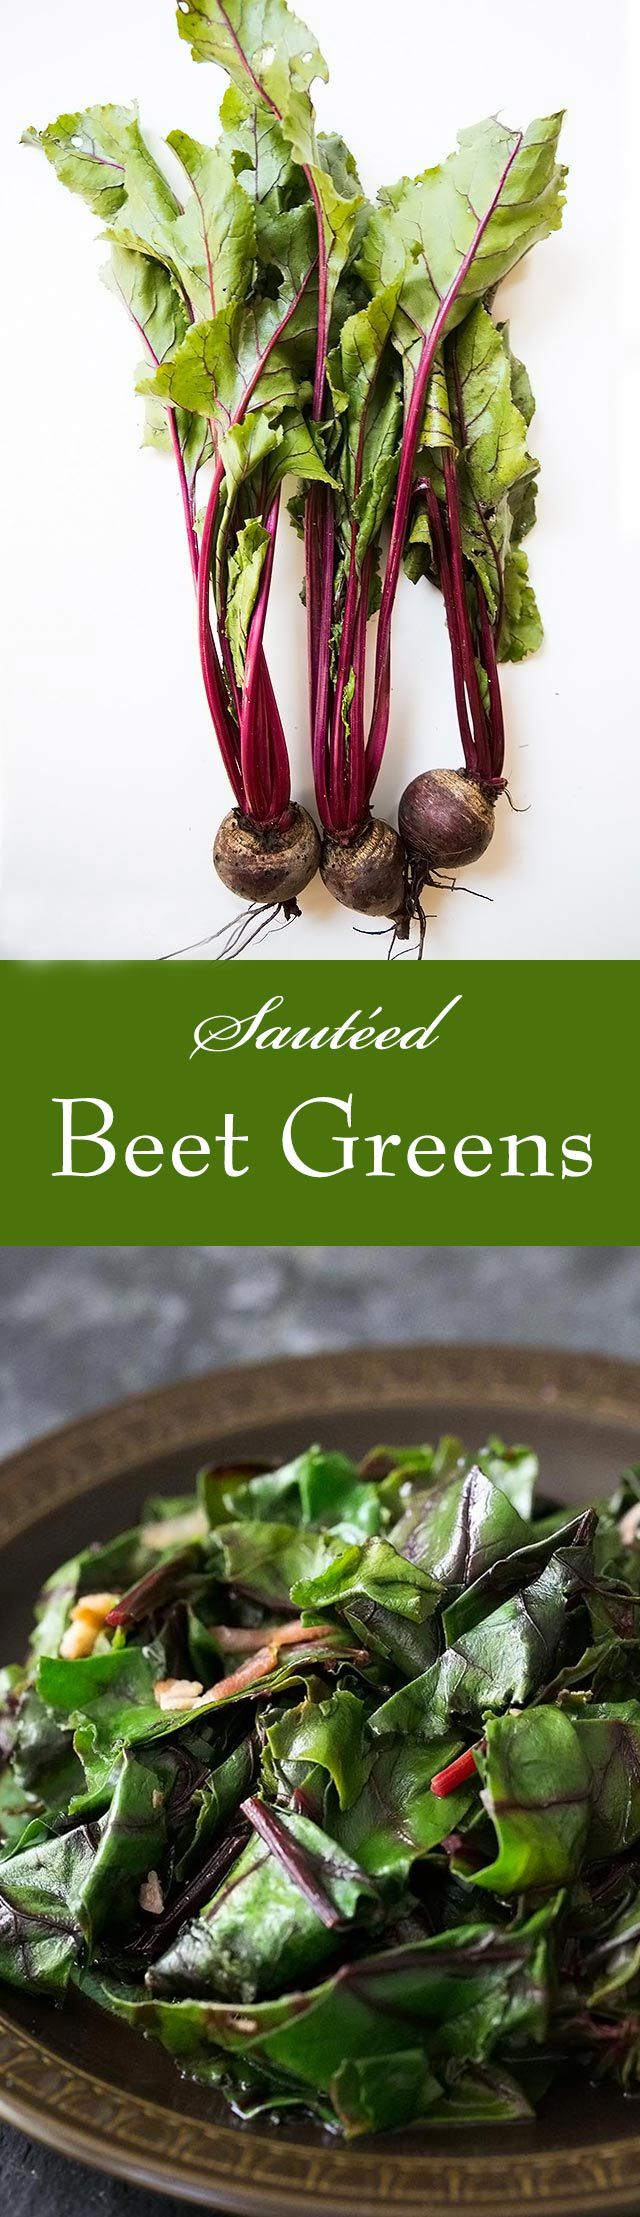 Beet Greens ~ Delicious way to serve beet greens and other greens such as collard or kale.  Beet greens sautéed with bacon, garlic, onion, in a sweet and sour sauce. So easy! On SimplyRecipes.com